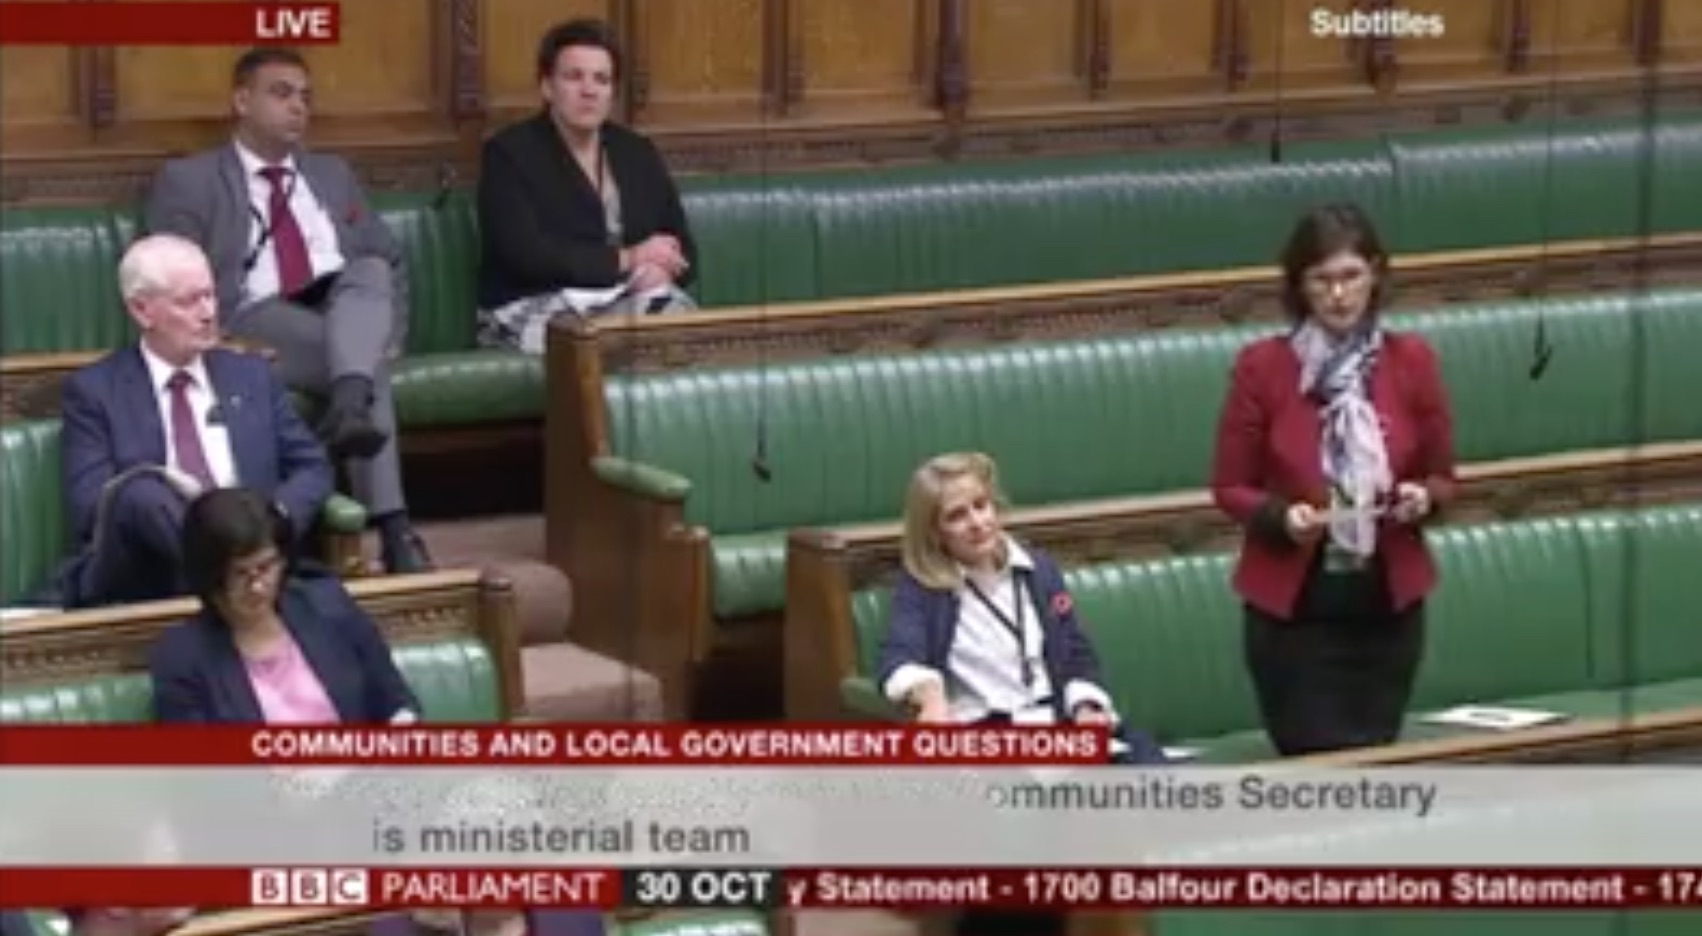 Layla Moran MP stands up for Kidlington, Yarnton and Begbroke residents in Parliament